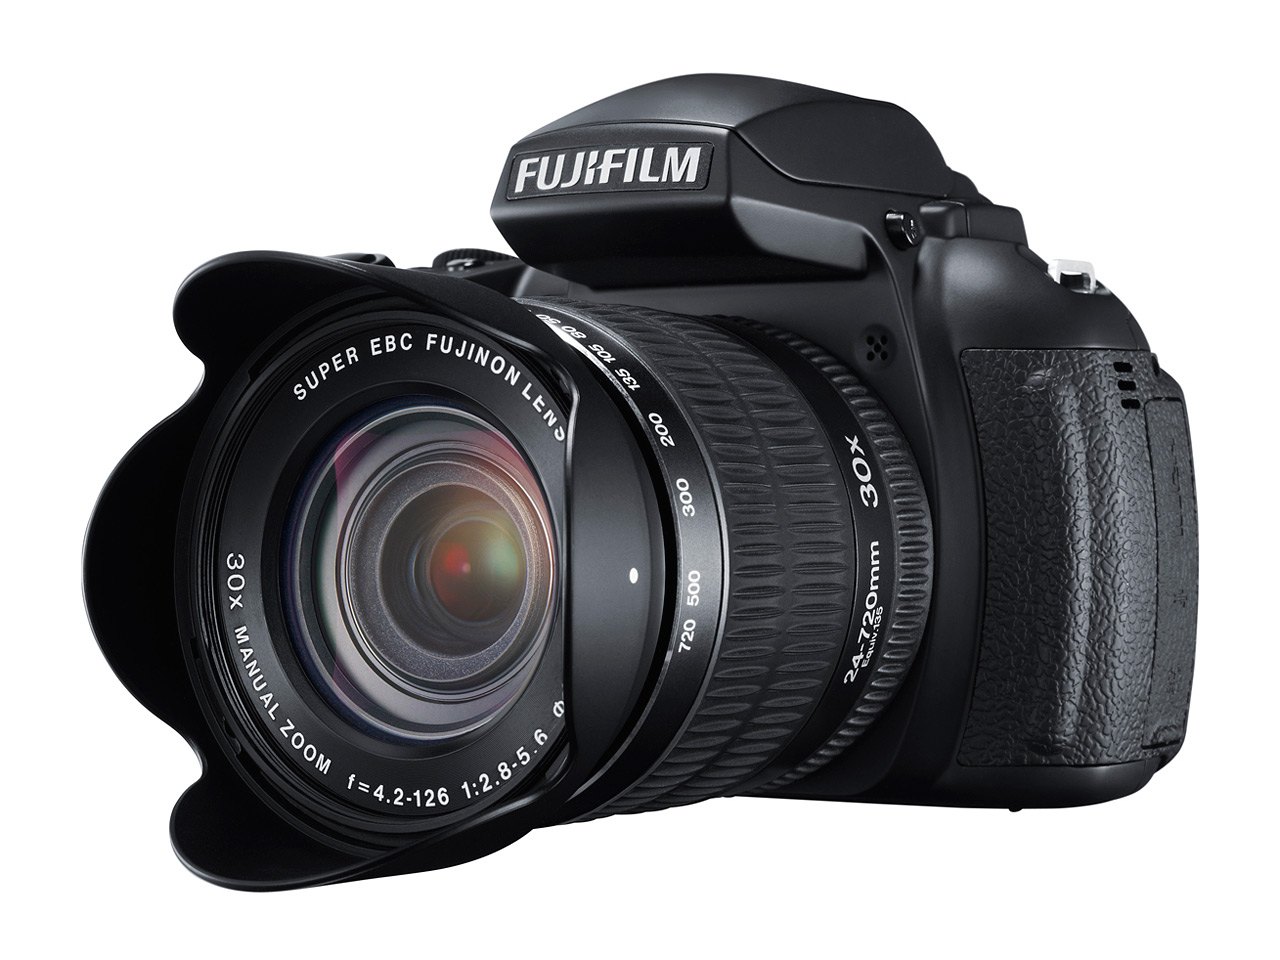 fujifilm reveals hs30exr 30x cmos superzoom with raw digital rh dpreview com fujifilm finepix hs20exr manual español fujifilm finepix hs20exr video test